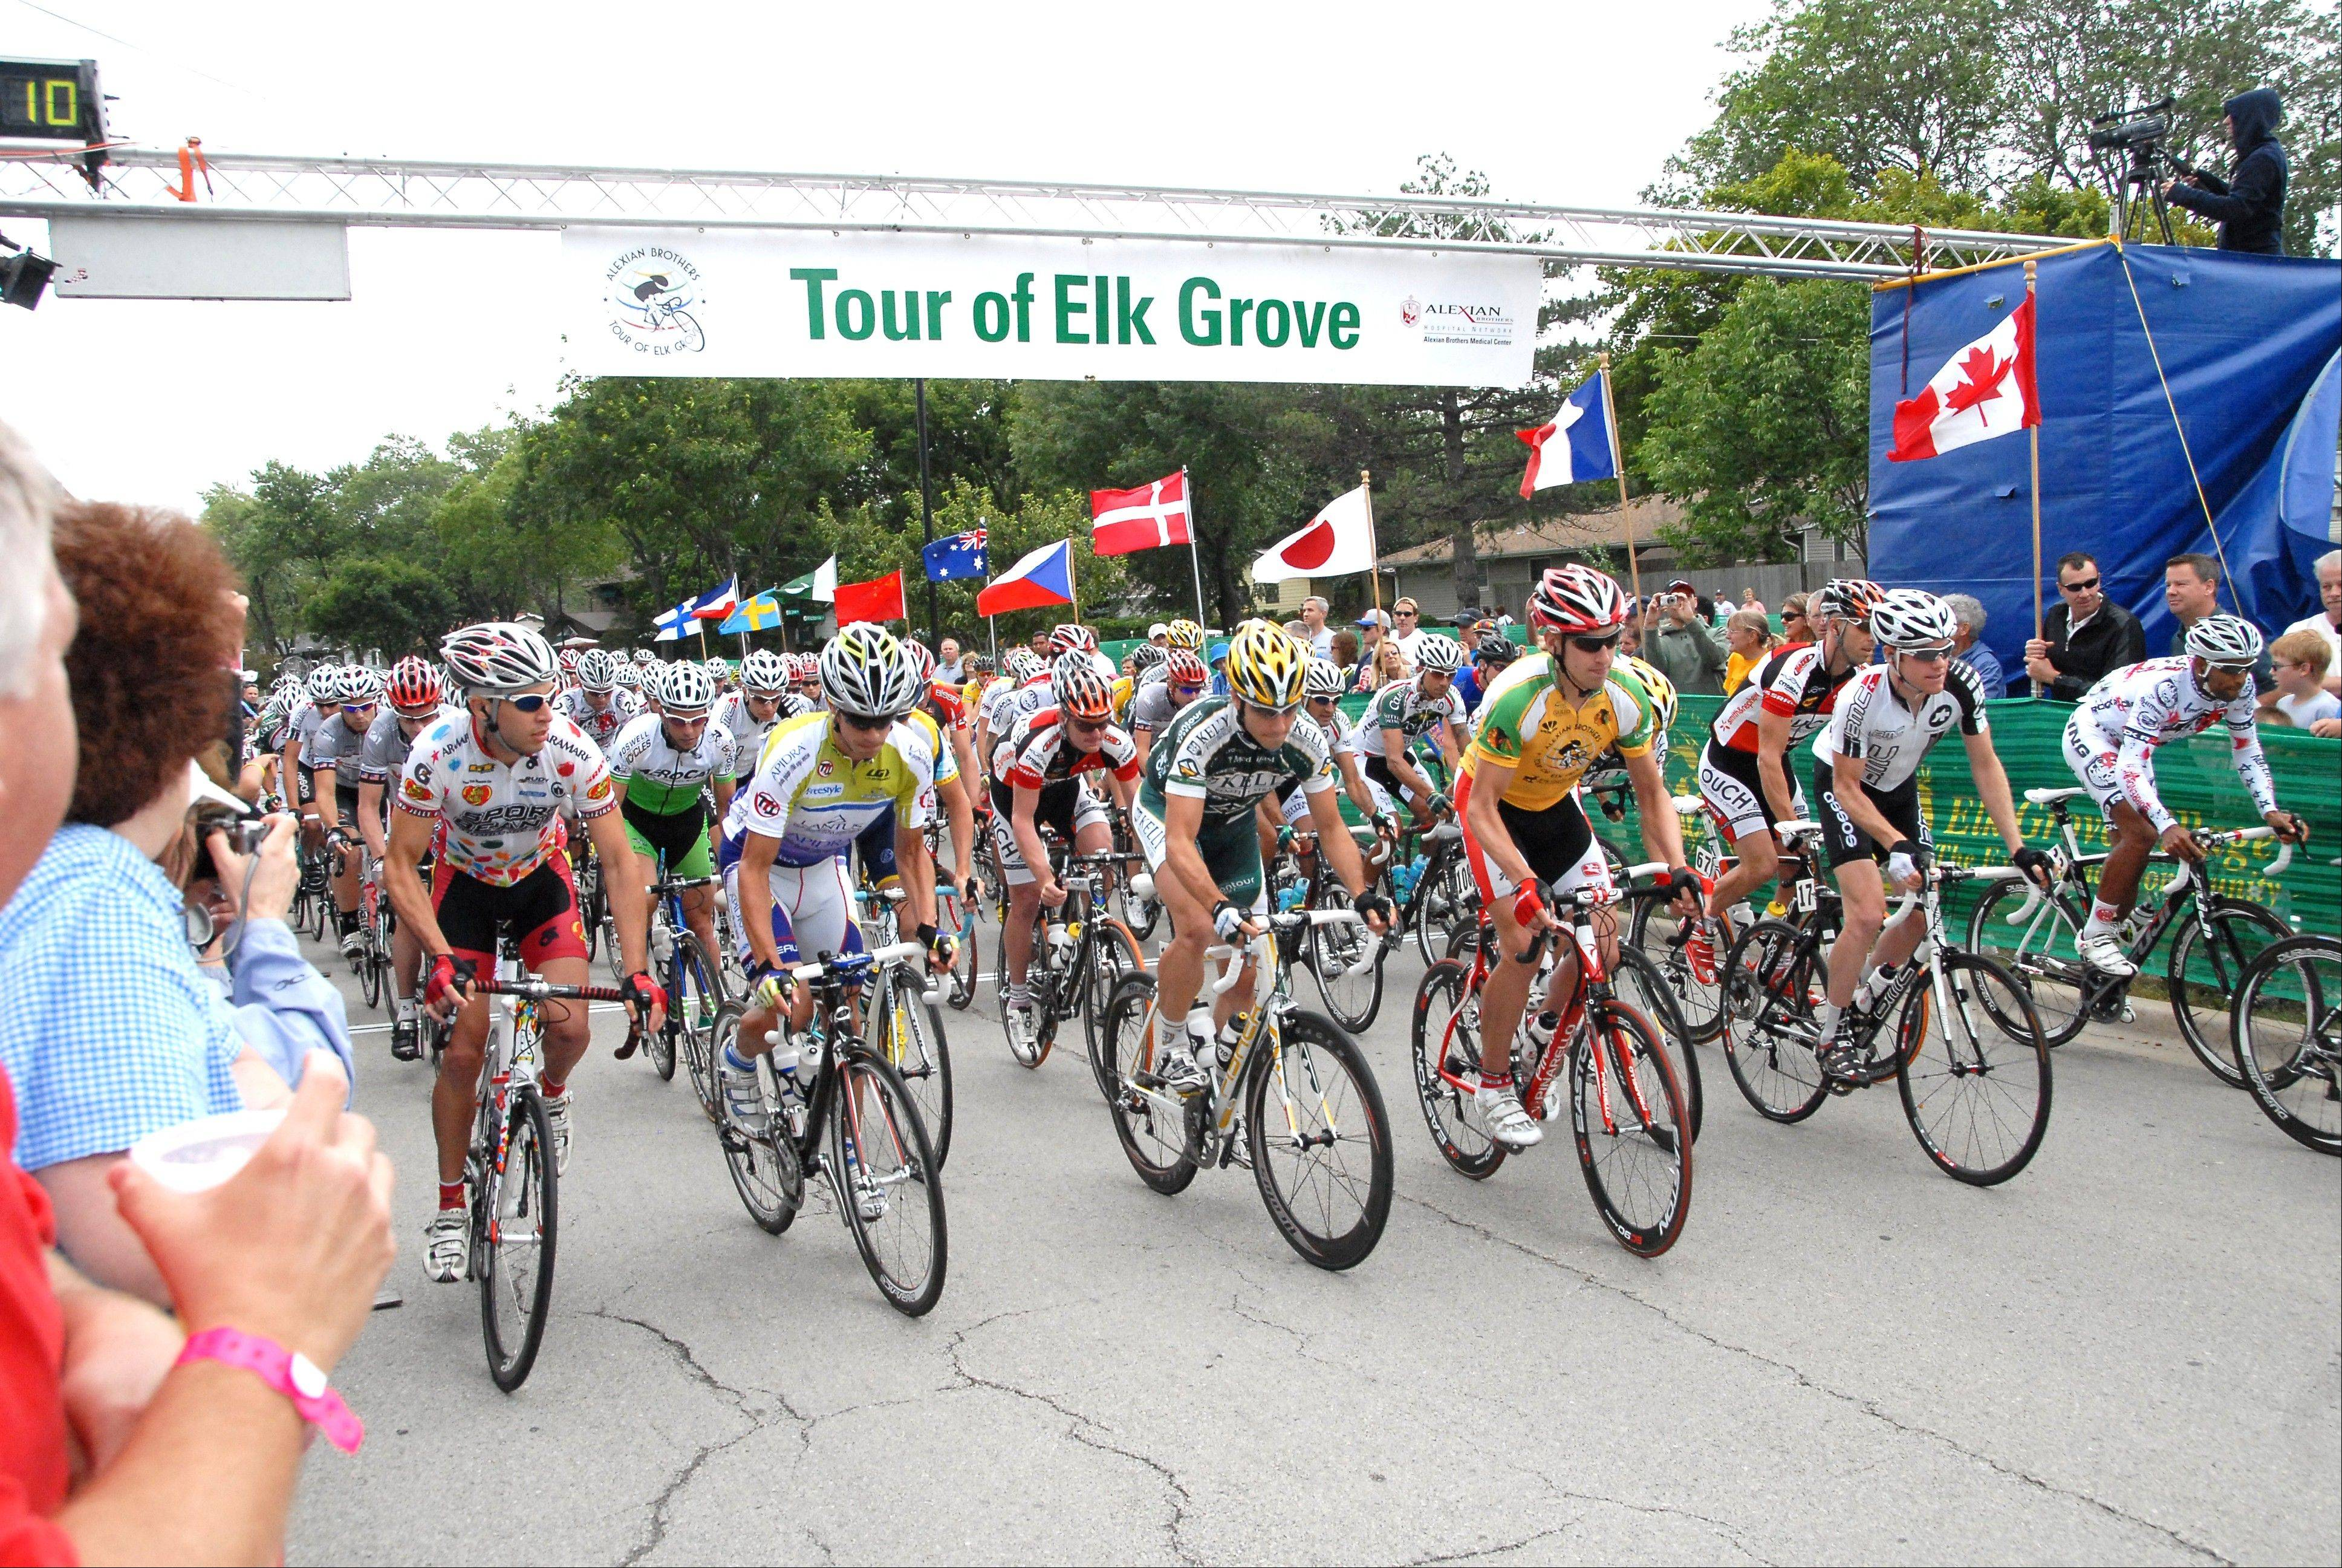 The fallout from disgraced cycling legend Lance Armstrong's doping scandal may include more drug testing at top-tier races, including the Northwest suburbs' own Tour of Elk Grove, according to the head of the United States sanctioning body for competitive cycling.